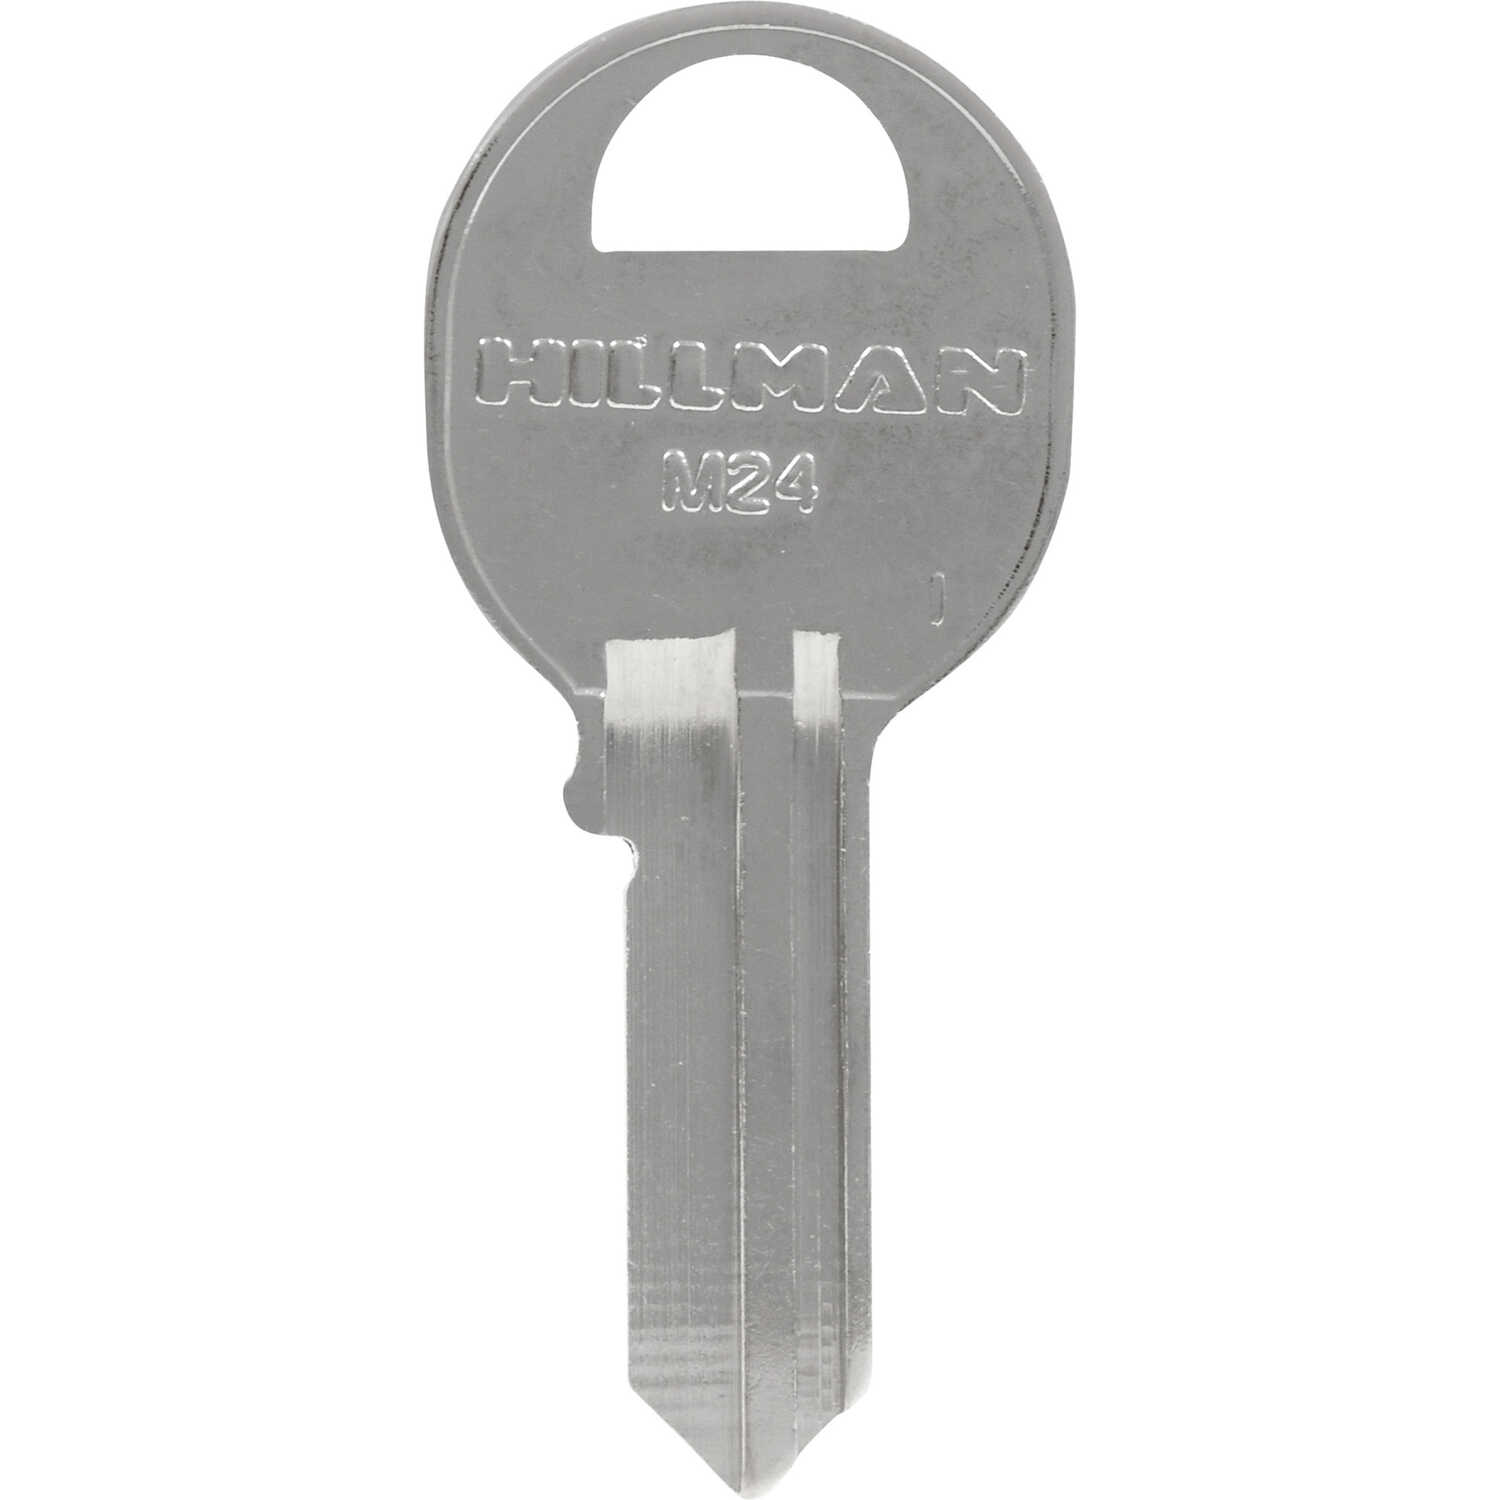 Hillman  KeyKrafter  House/Office  Universal Key Blank  2056  M24/600A  Single sided